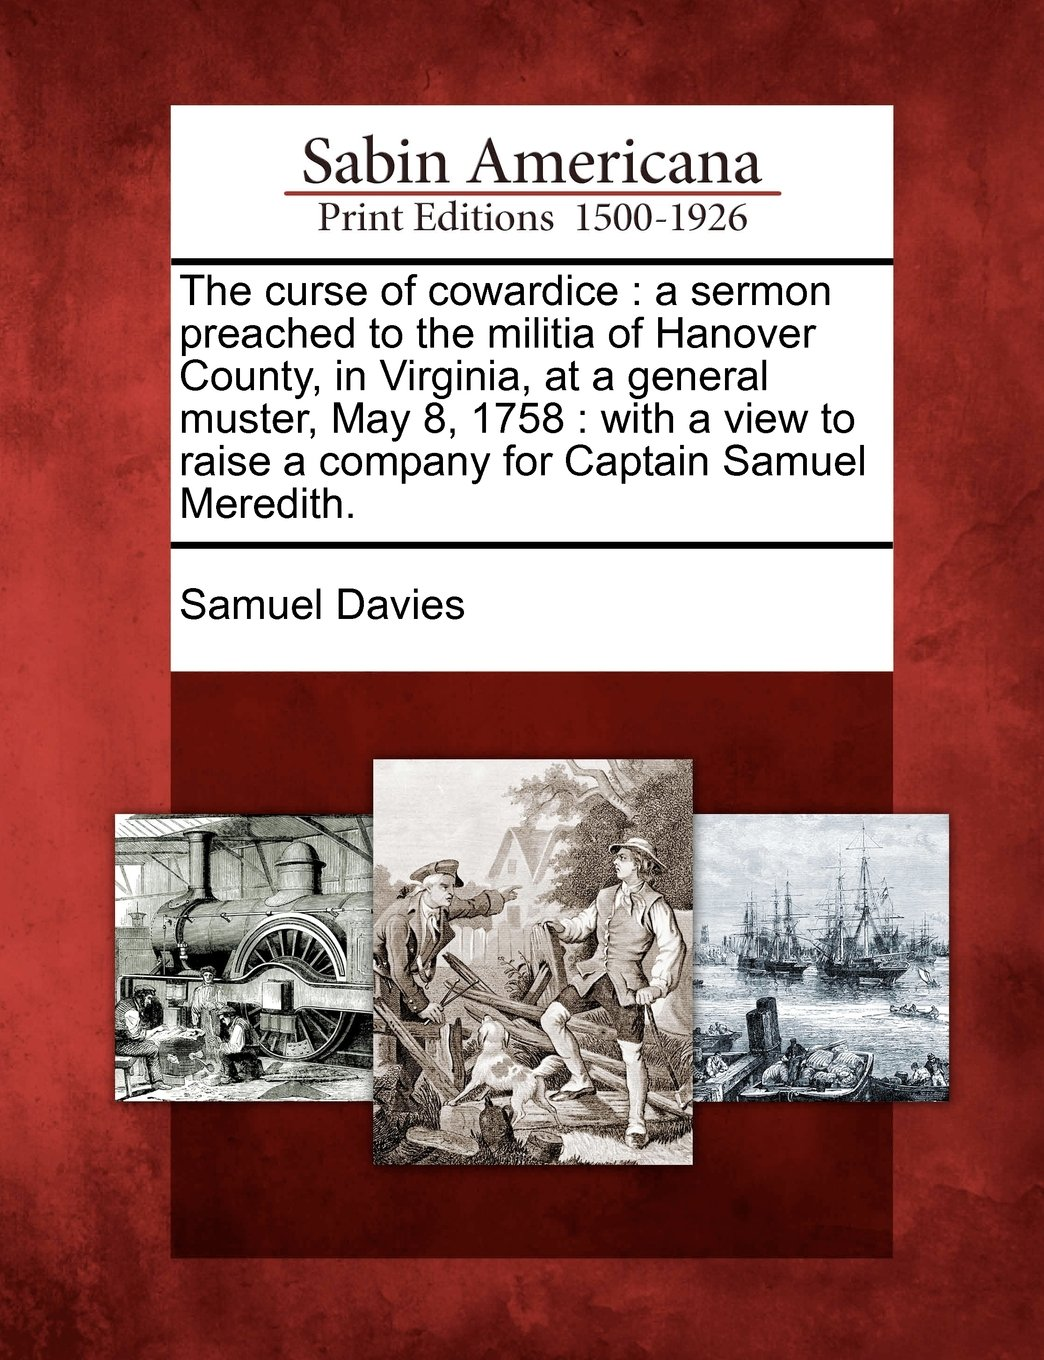 Download The curse of cowardice: a sermon preached to the militia of Hanover County, in Virginia, at a general muster, May 8, 1758 : with a view to raise a company for Captain Samuel Meredith. ebook